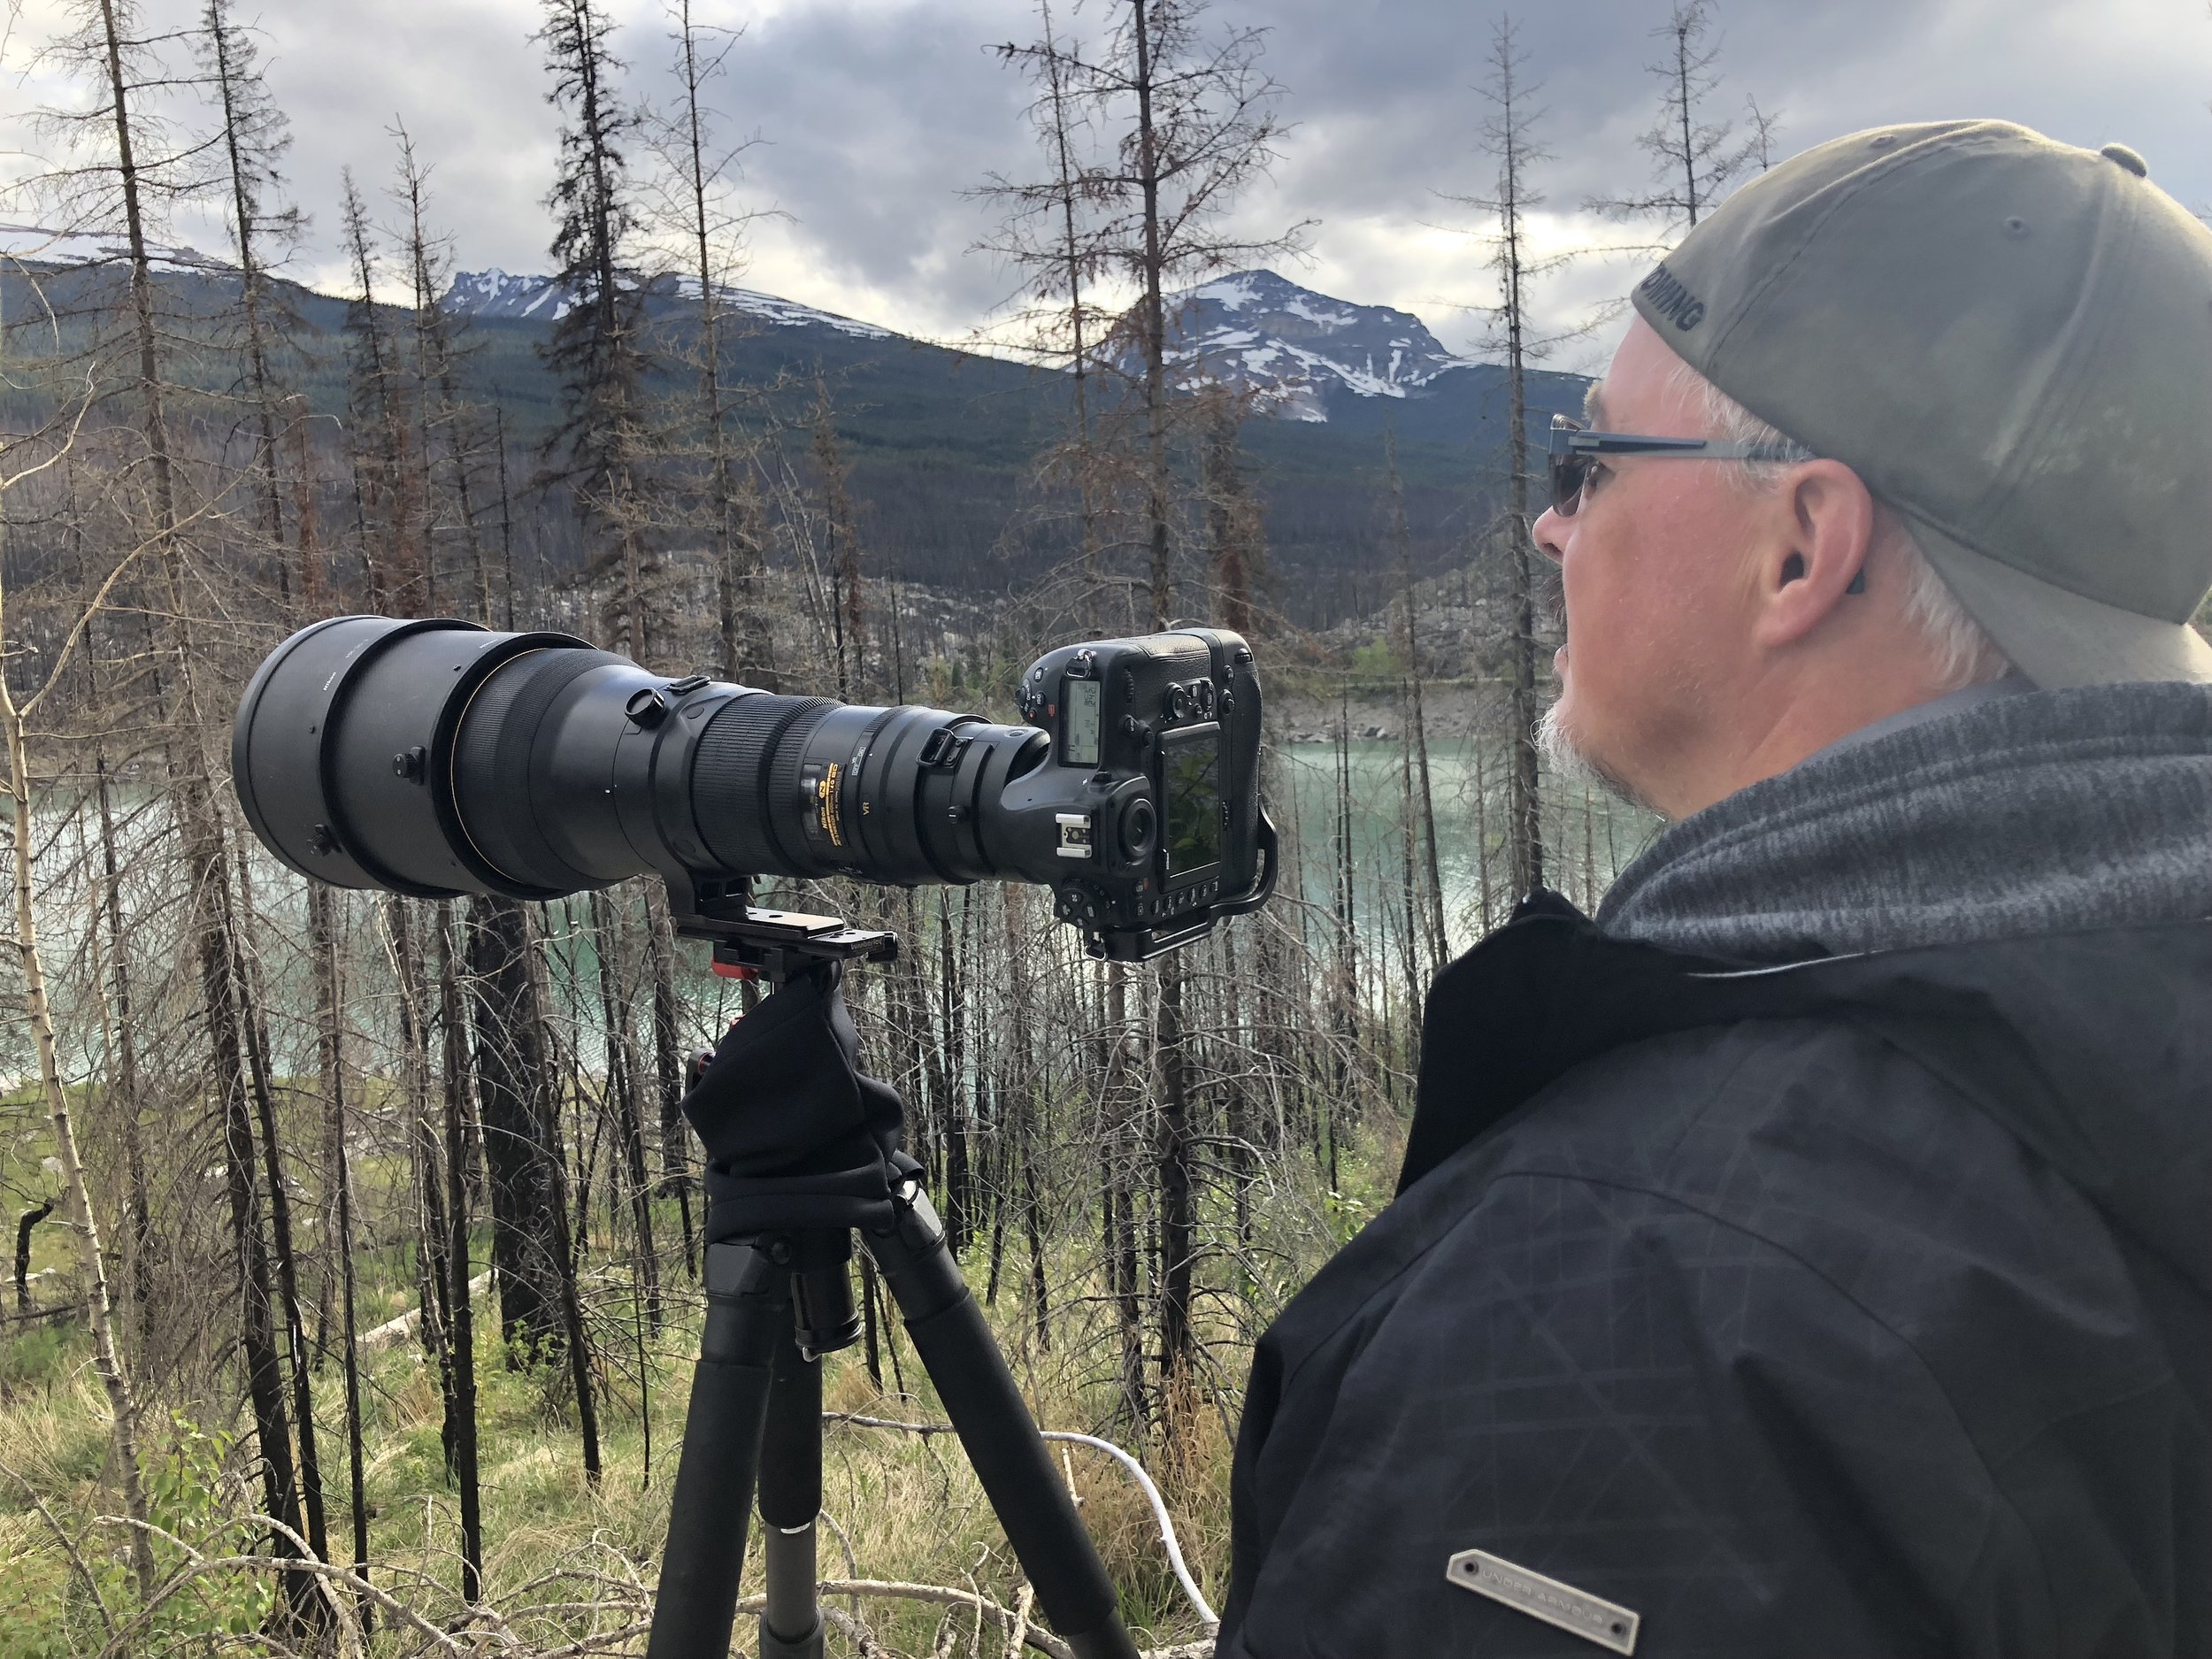 RON PHOTOGRAPHING IN ROCKIES.JPG